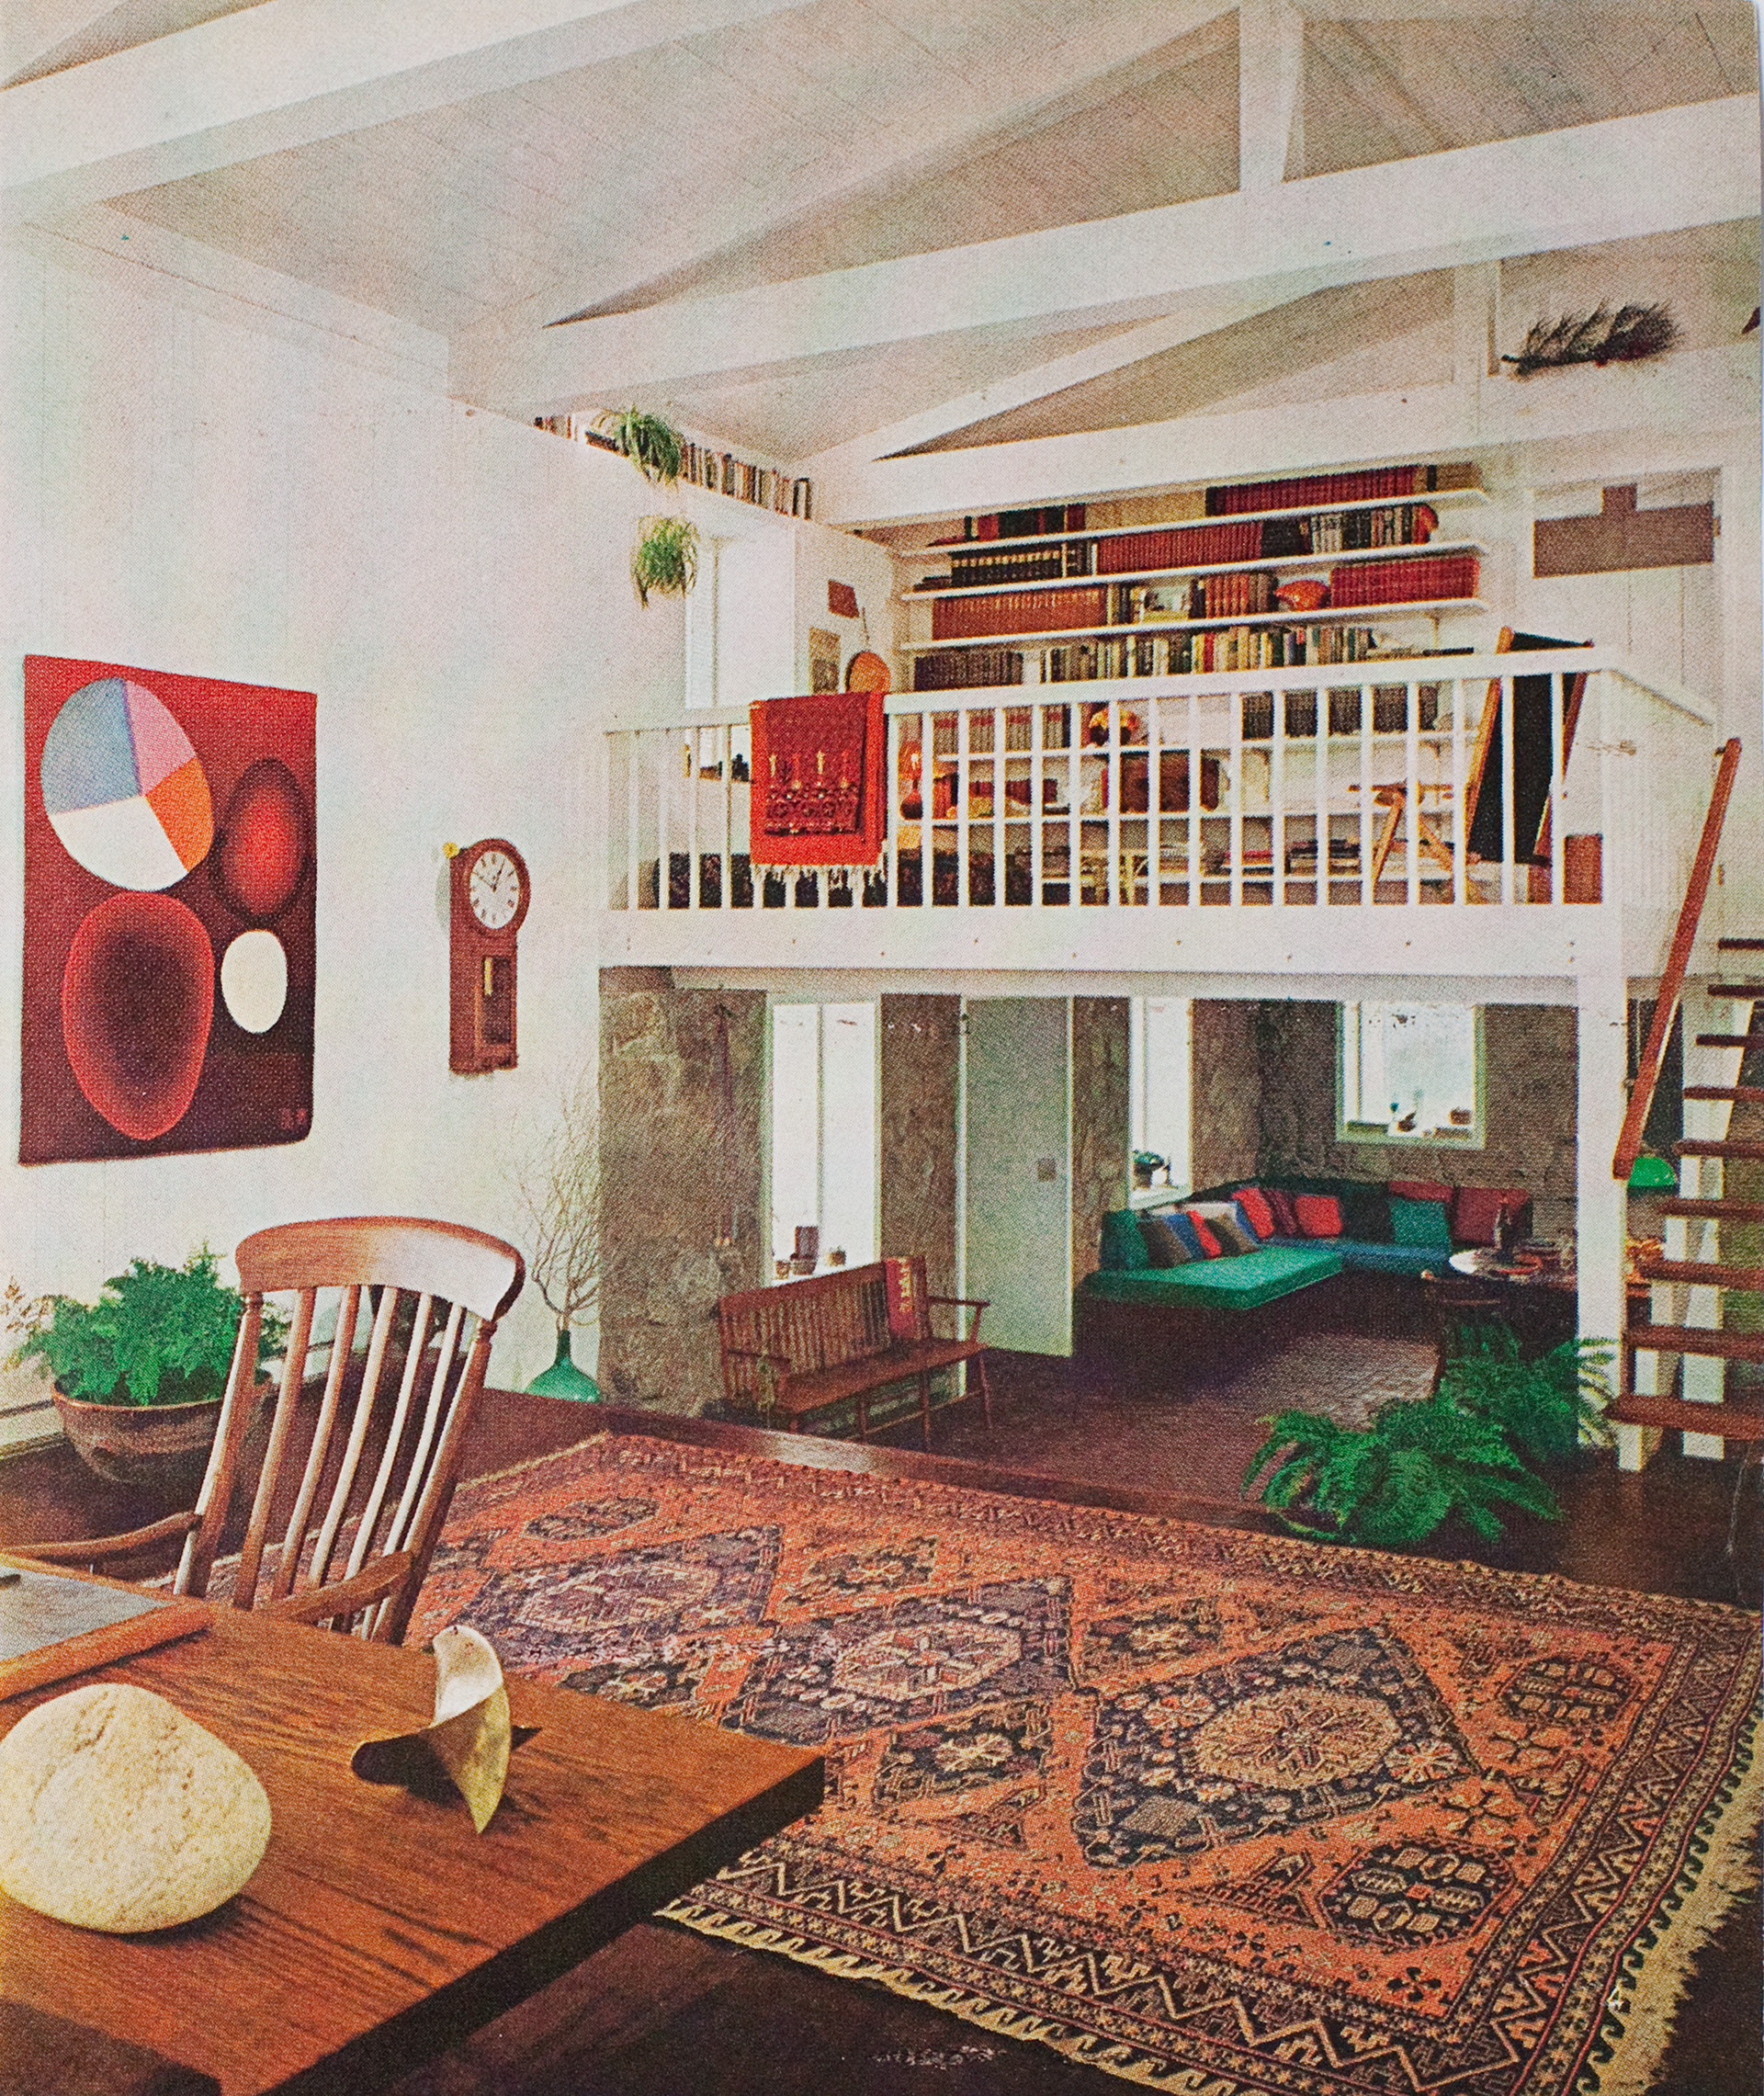 1970s magazine inspiration making nice in the midwest for Home decor 1970s